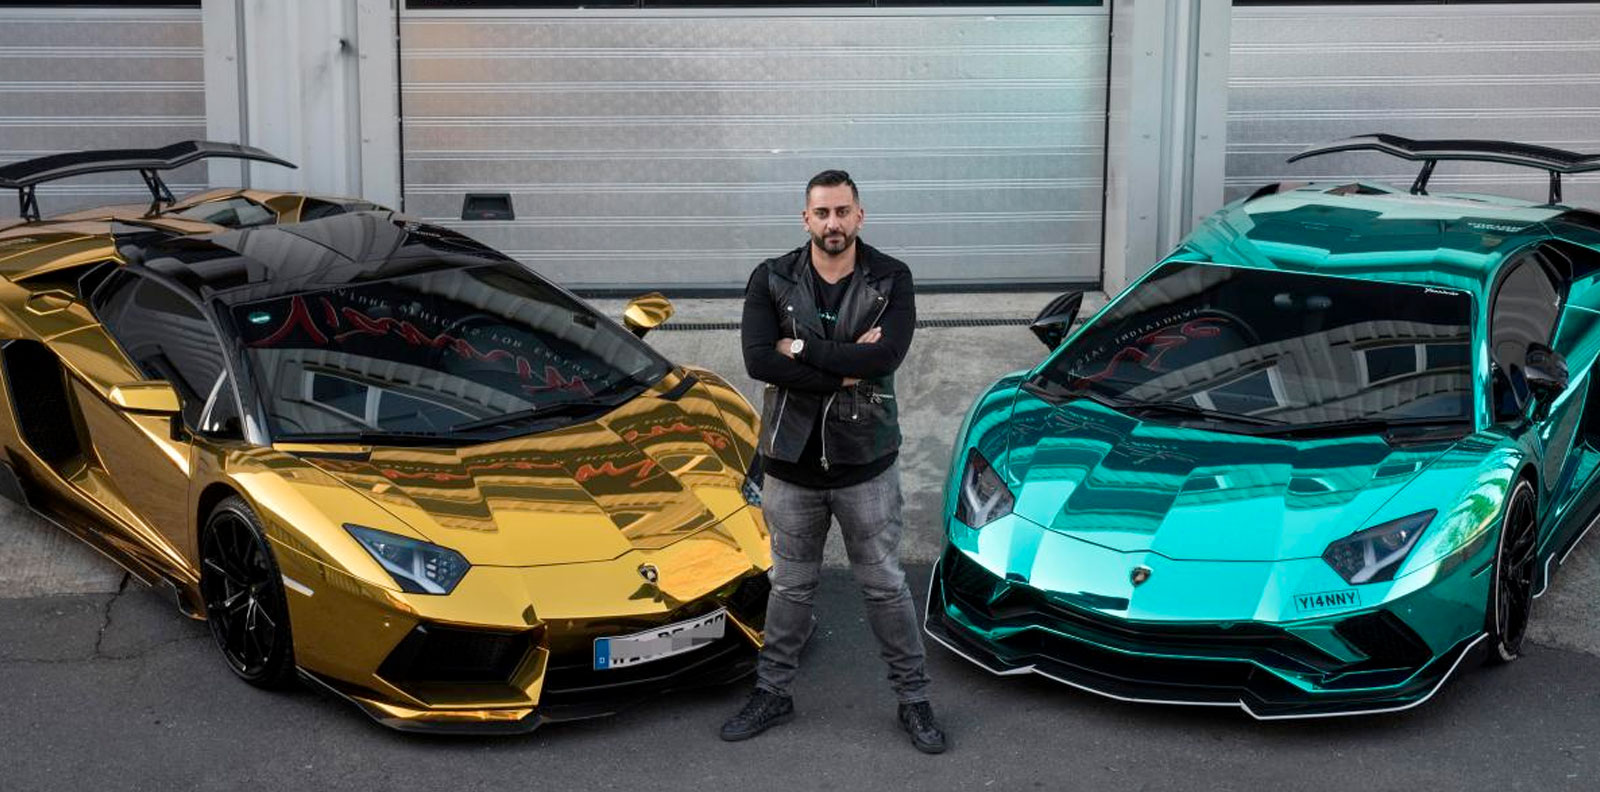 Yiannimize Car Wrapping